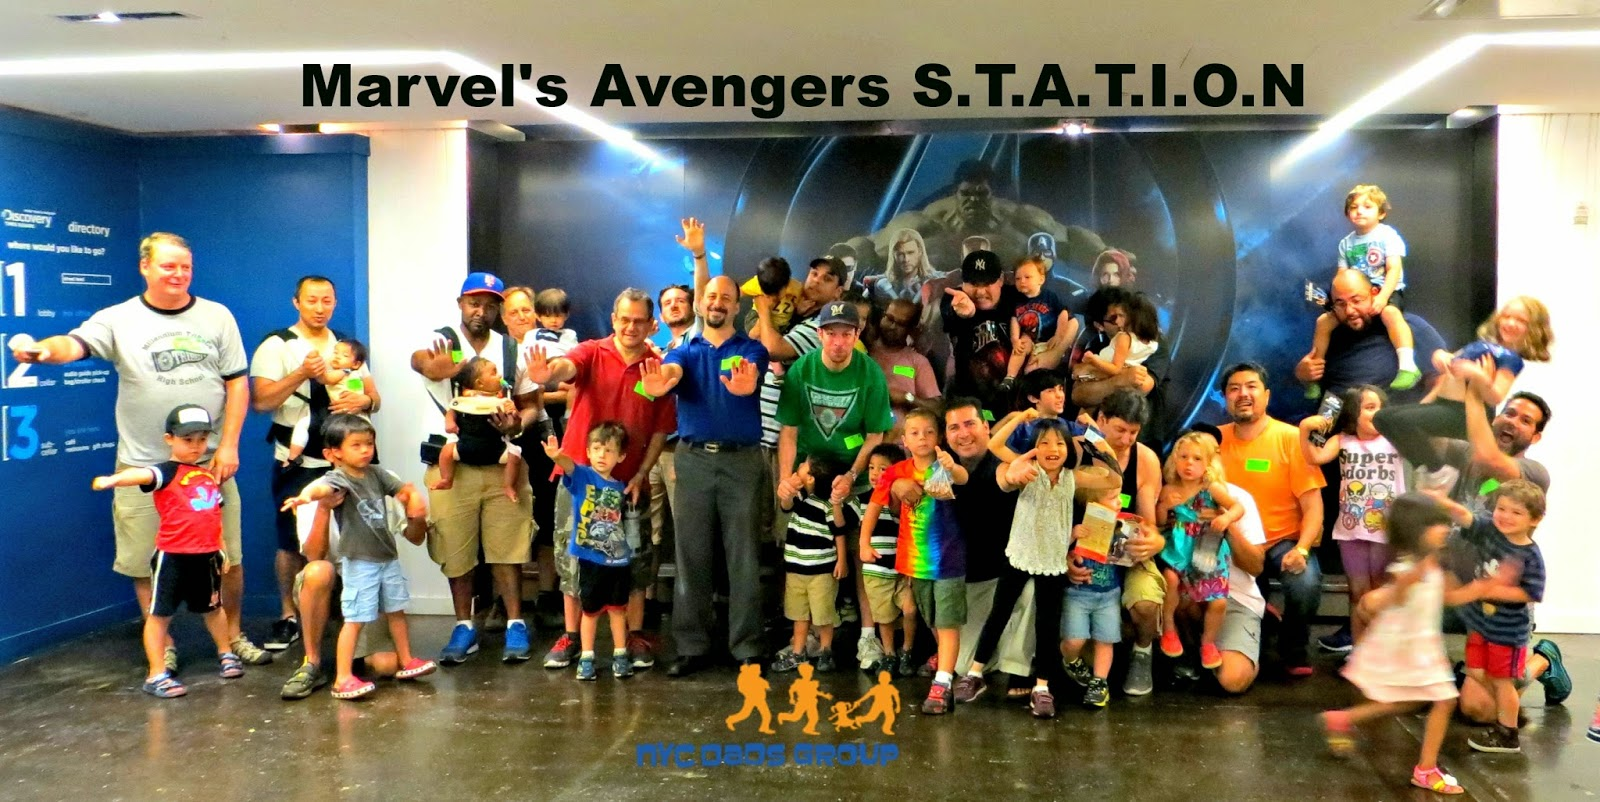 NYC Dads Group pose as superheroes at Marvel's Avengers S.T.A.T.I.O.N Exhibit